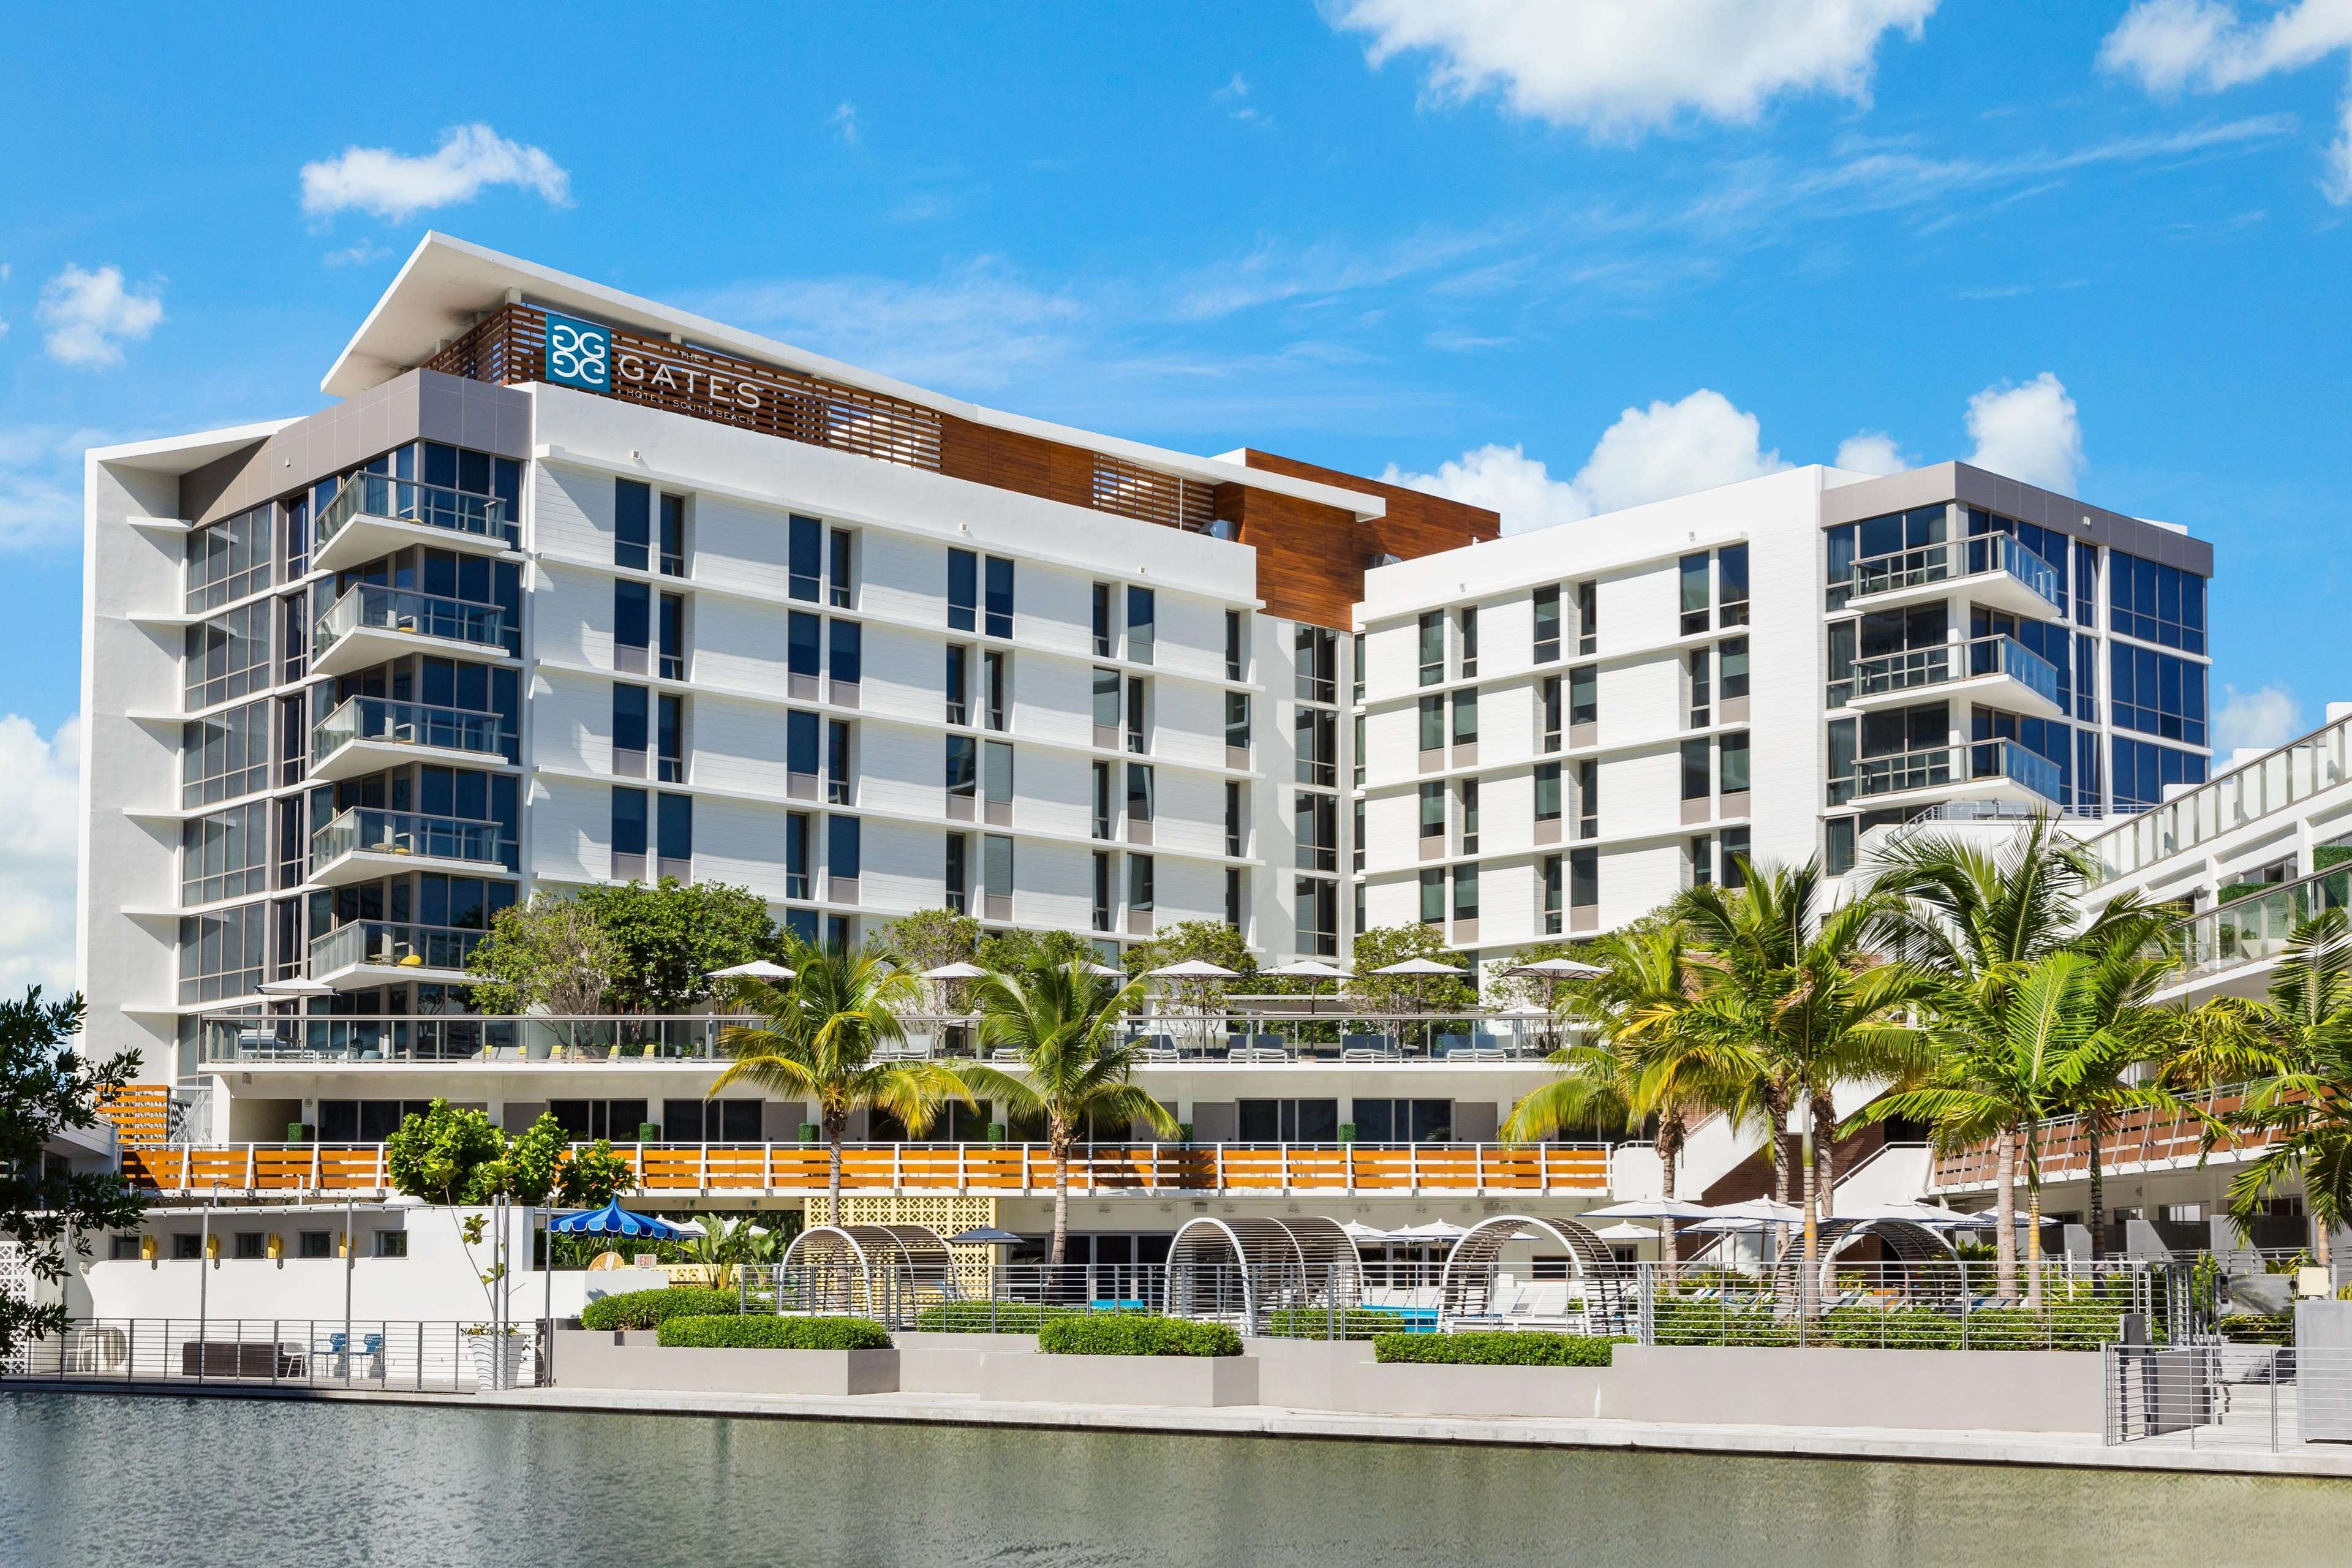 The Gates Hotel South Beach - a DoubleTree by Hilton image 1